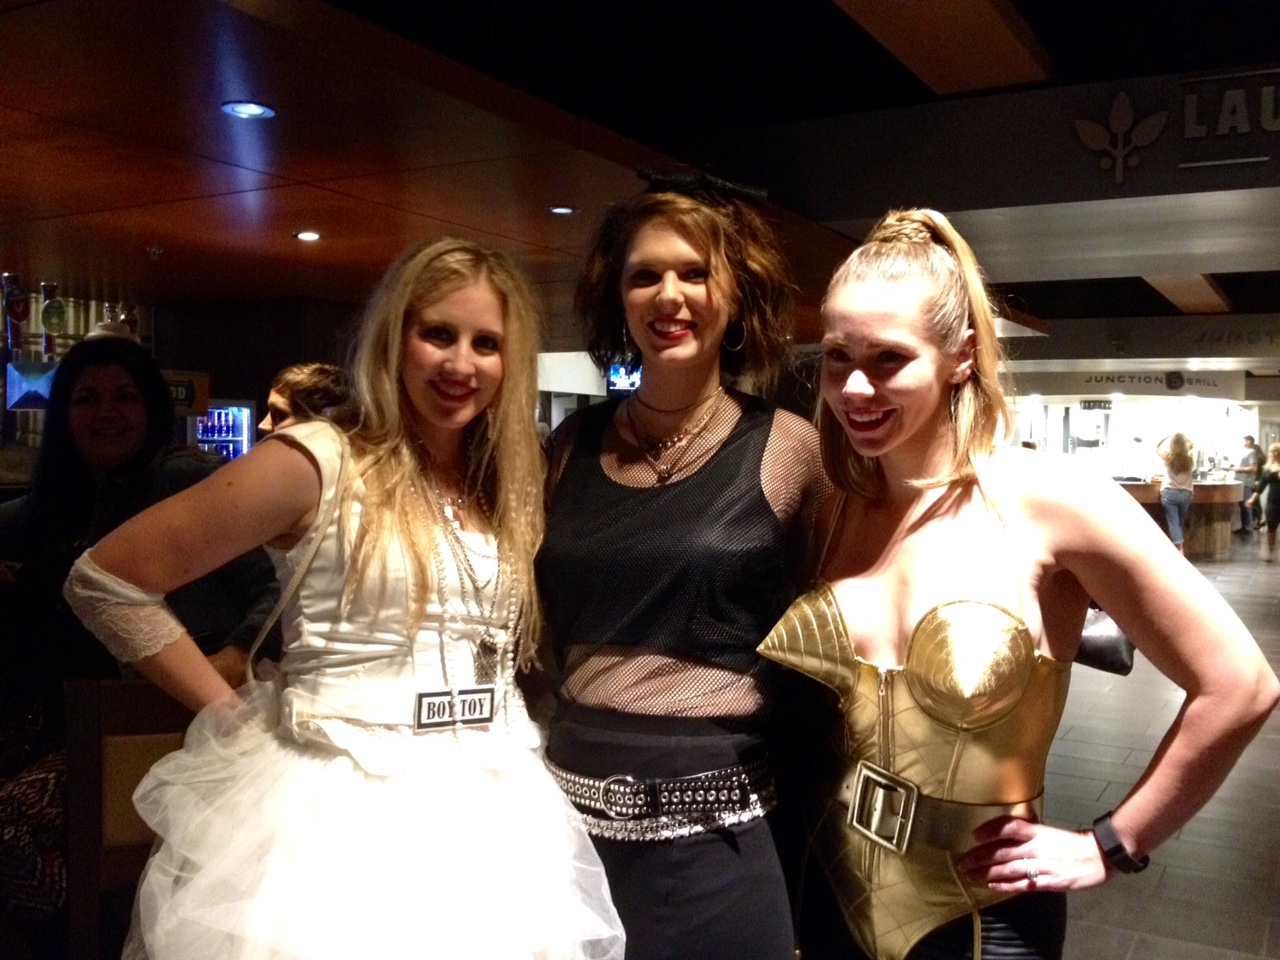 Concert goers dressed as different versions of Madonna